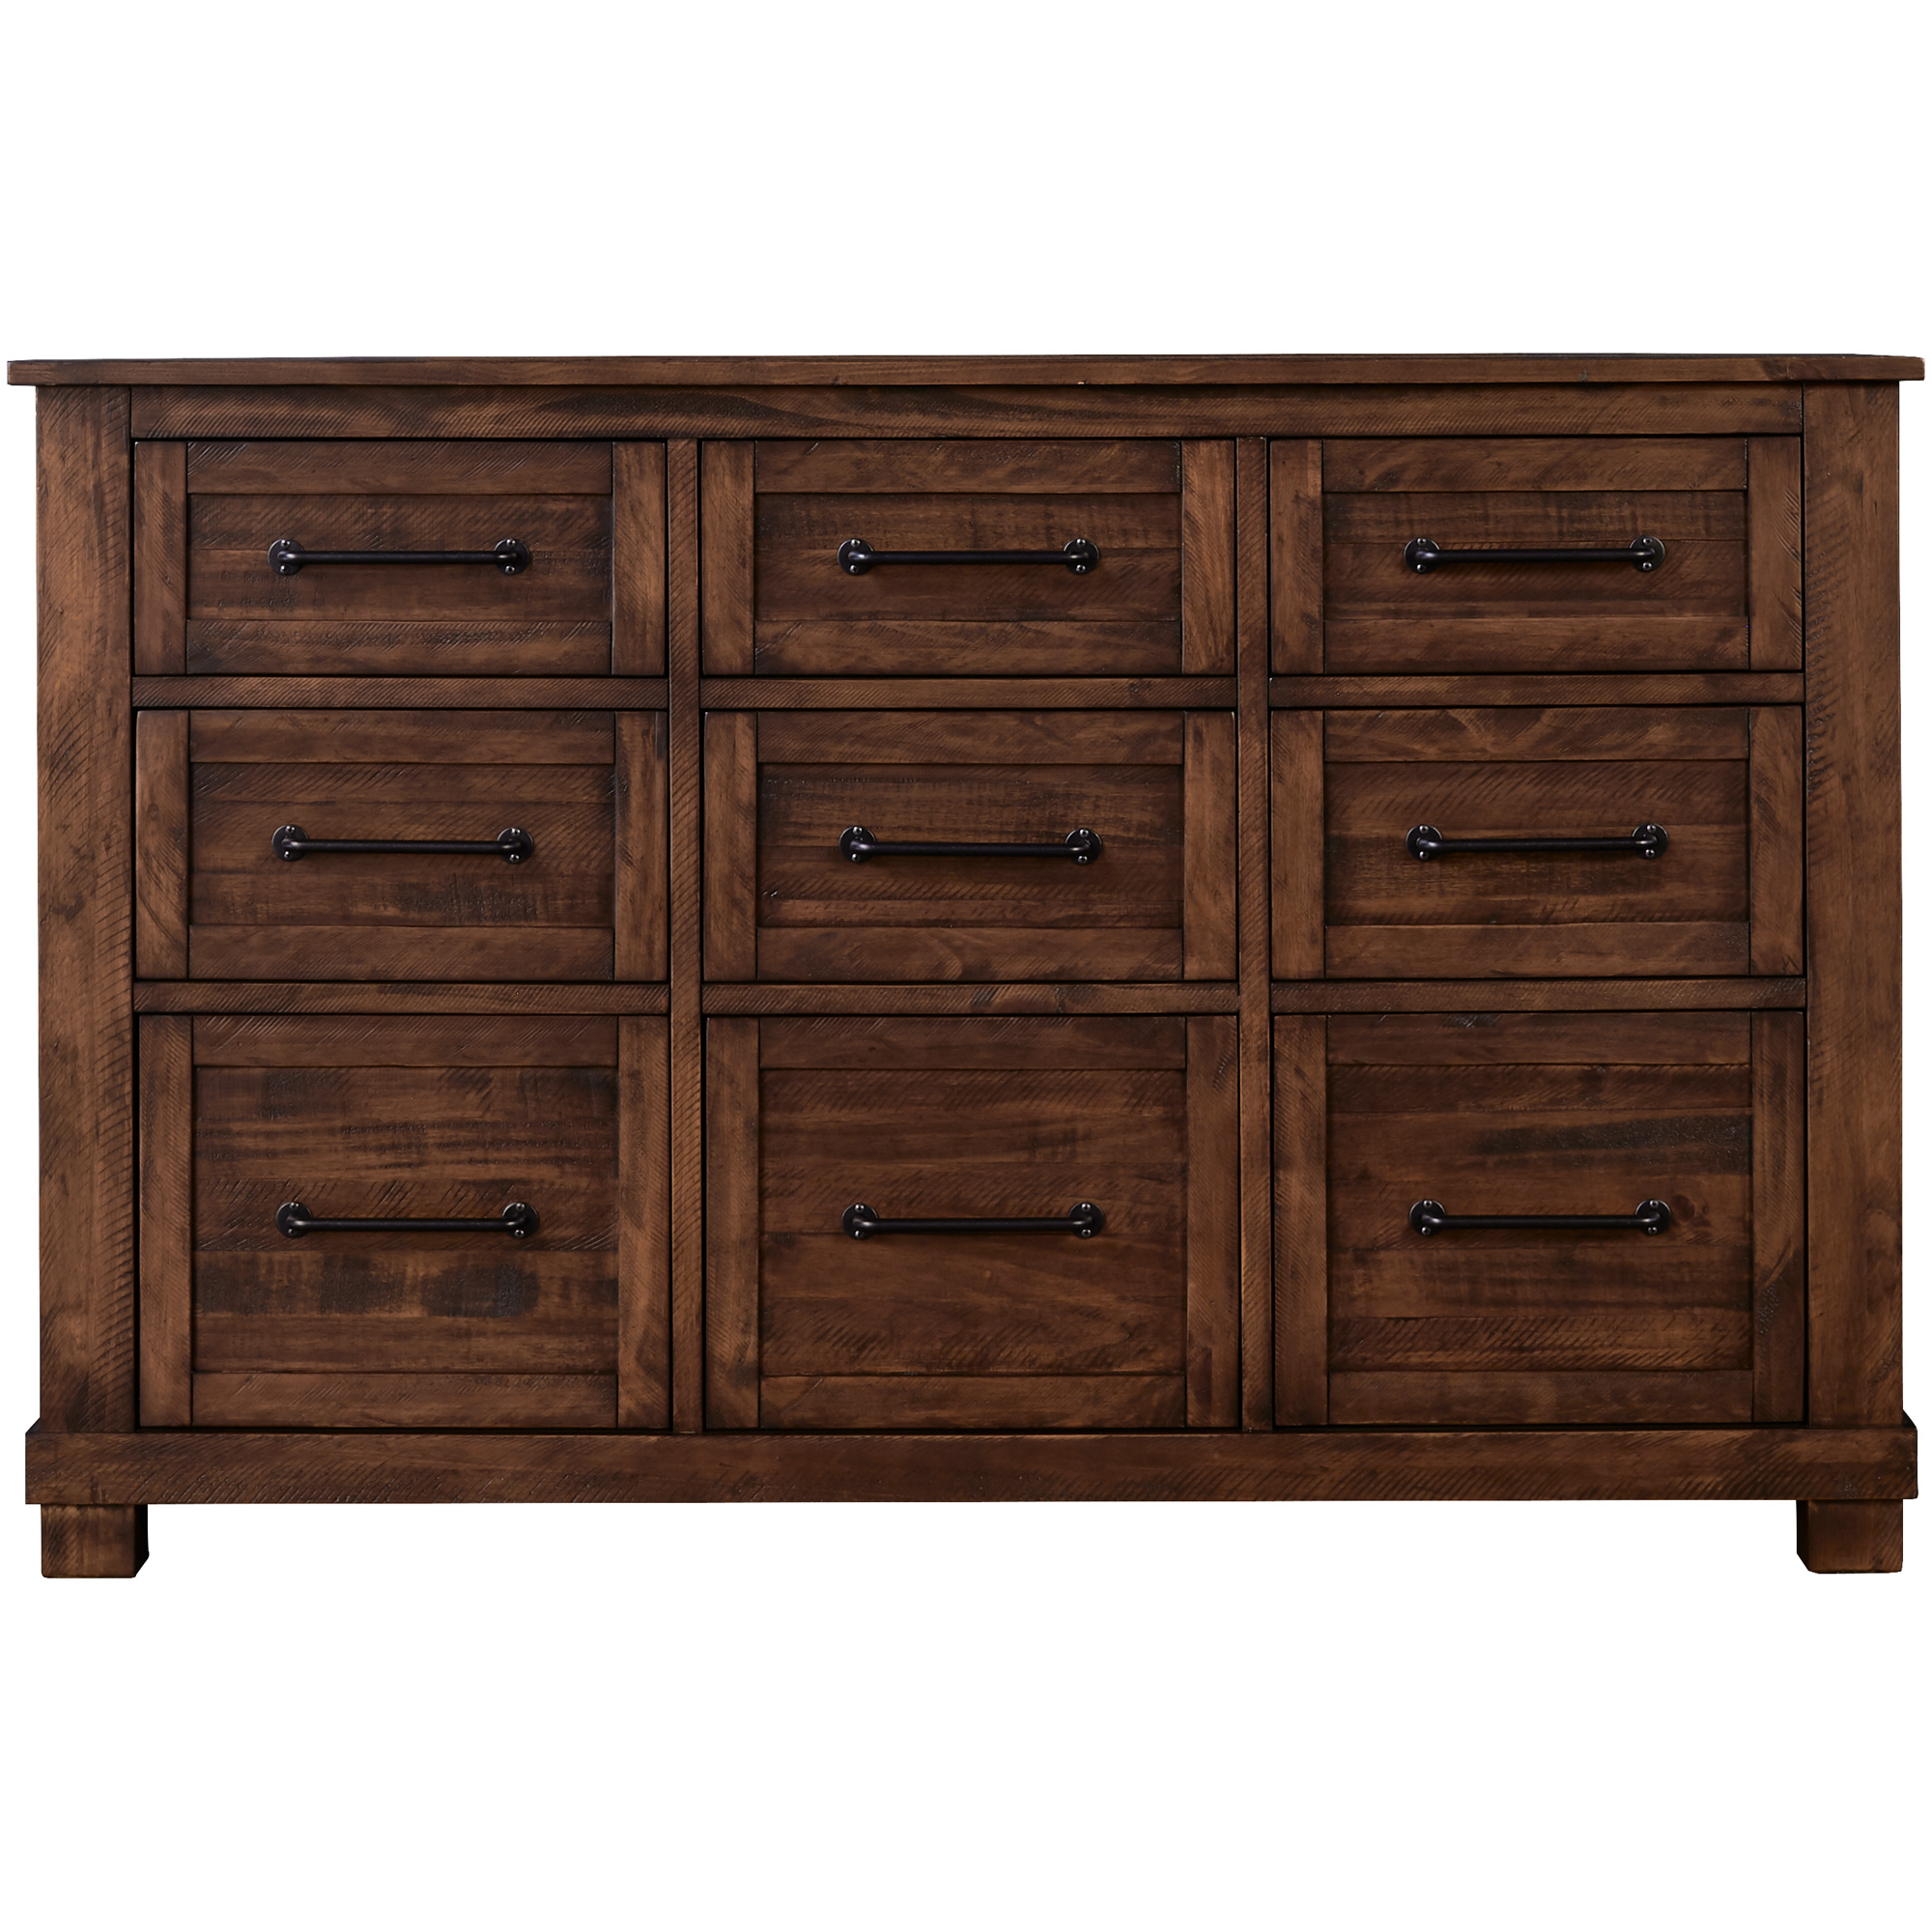 America | Sun Valley Rustic Timber Dresser